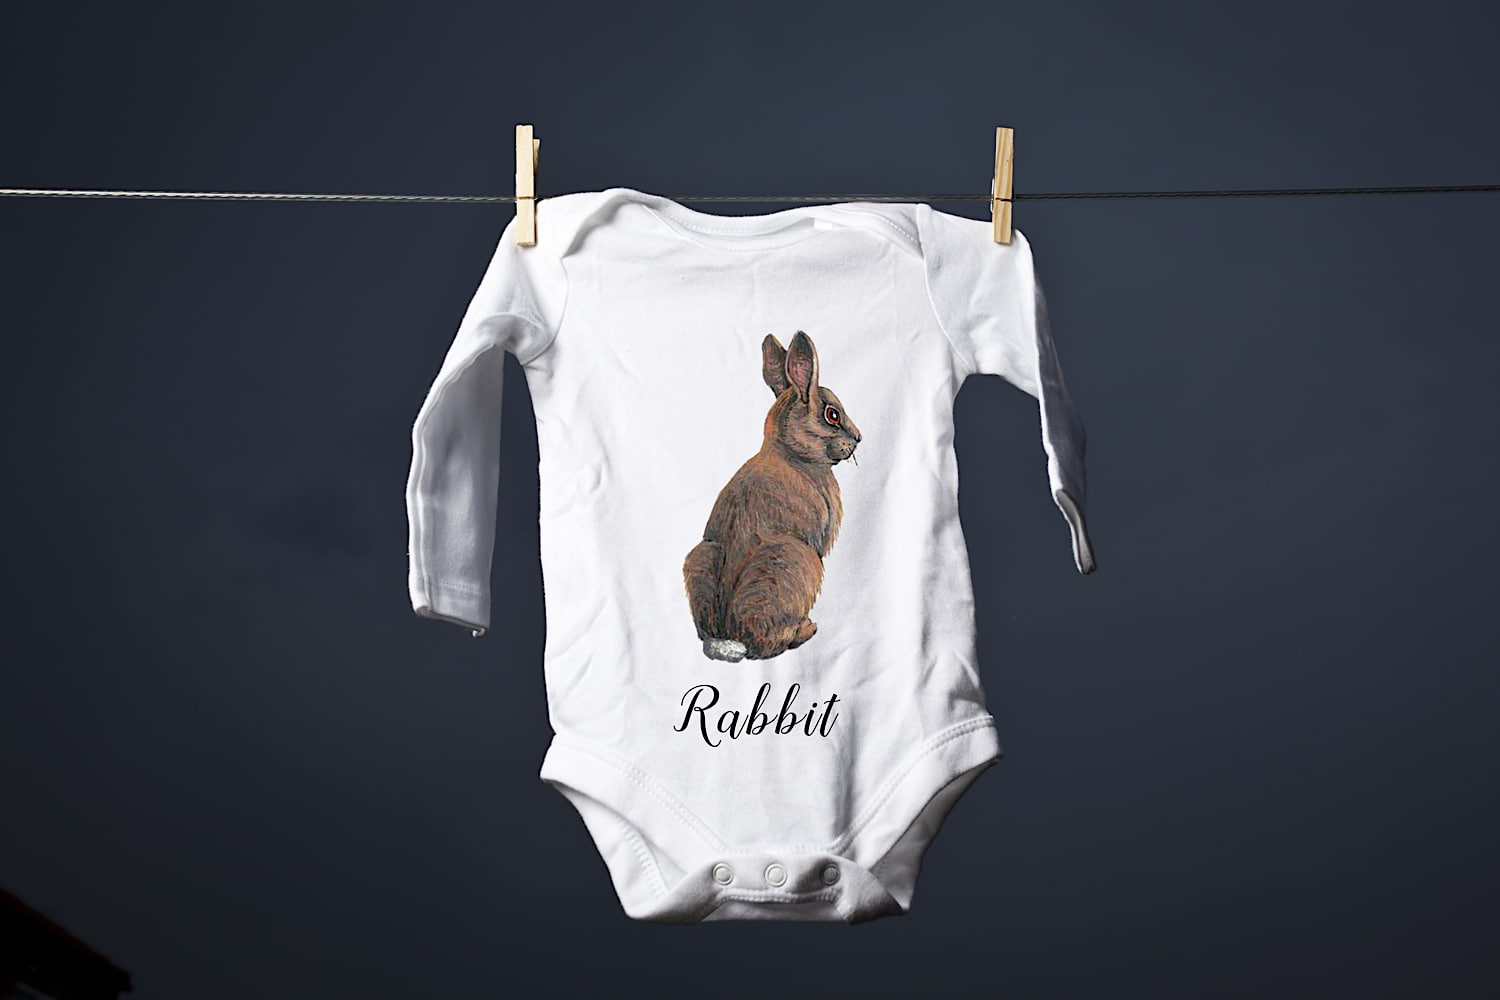 Rabbit Baby Grow shutterstock 277541312